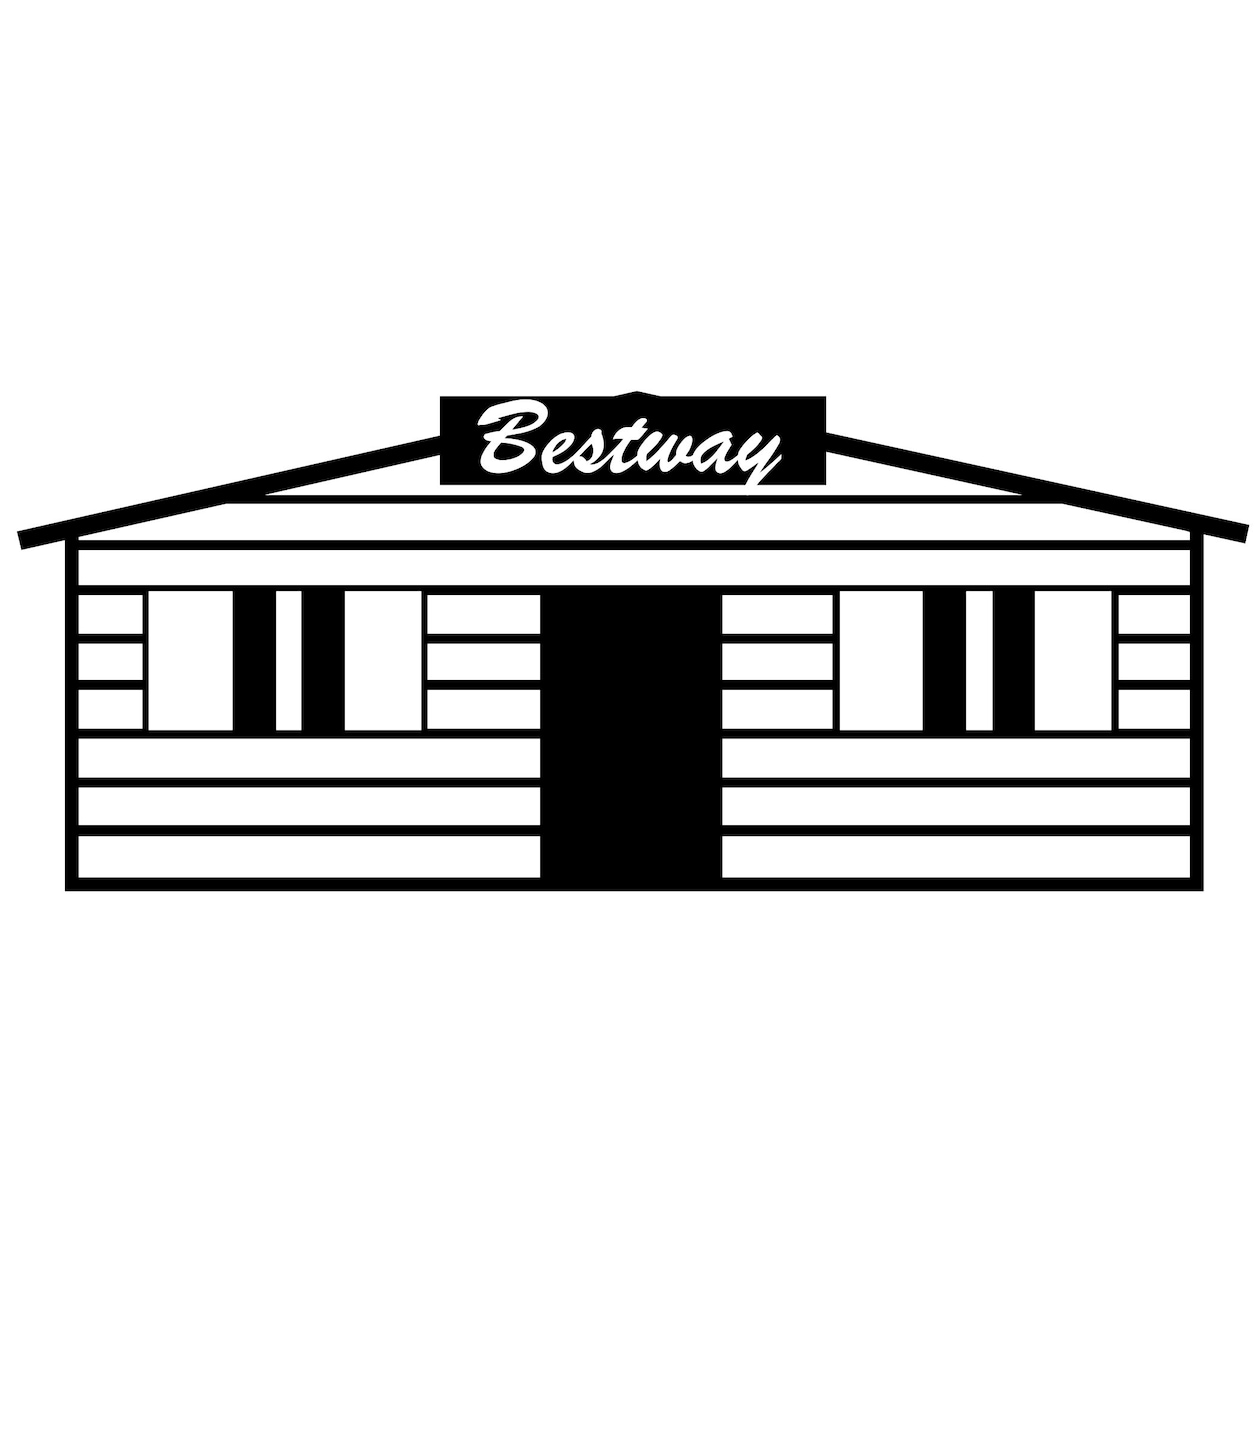 Bestway Portable Buildings, Inc